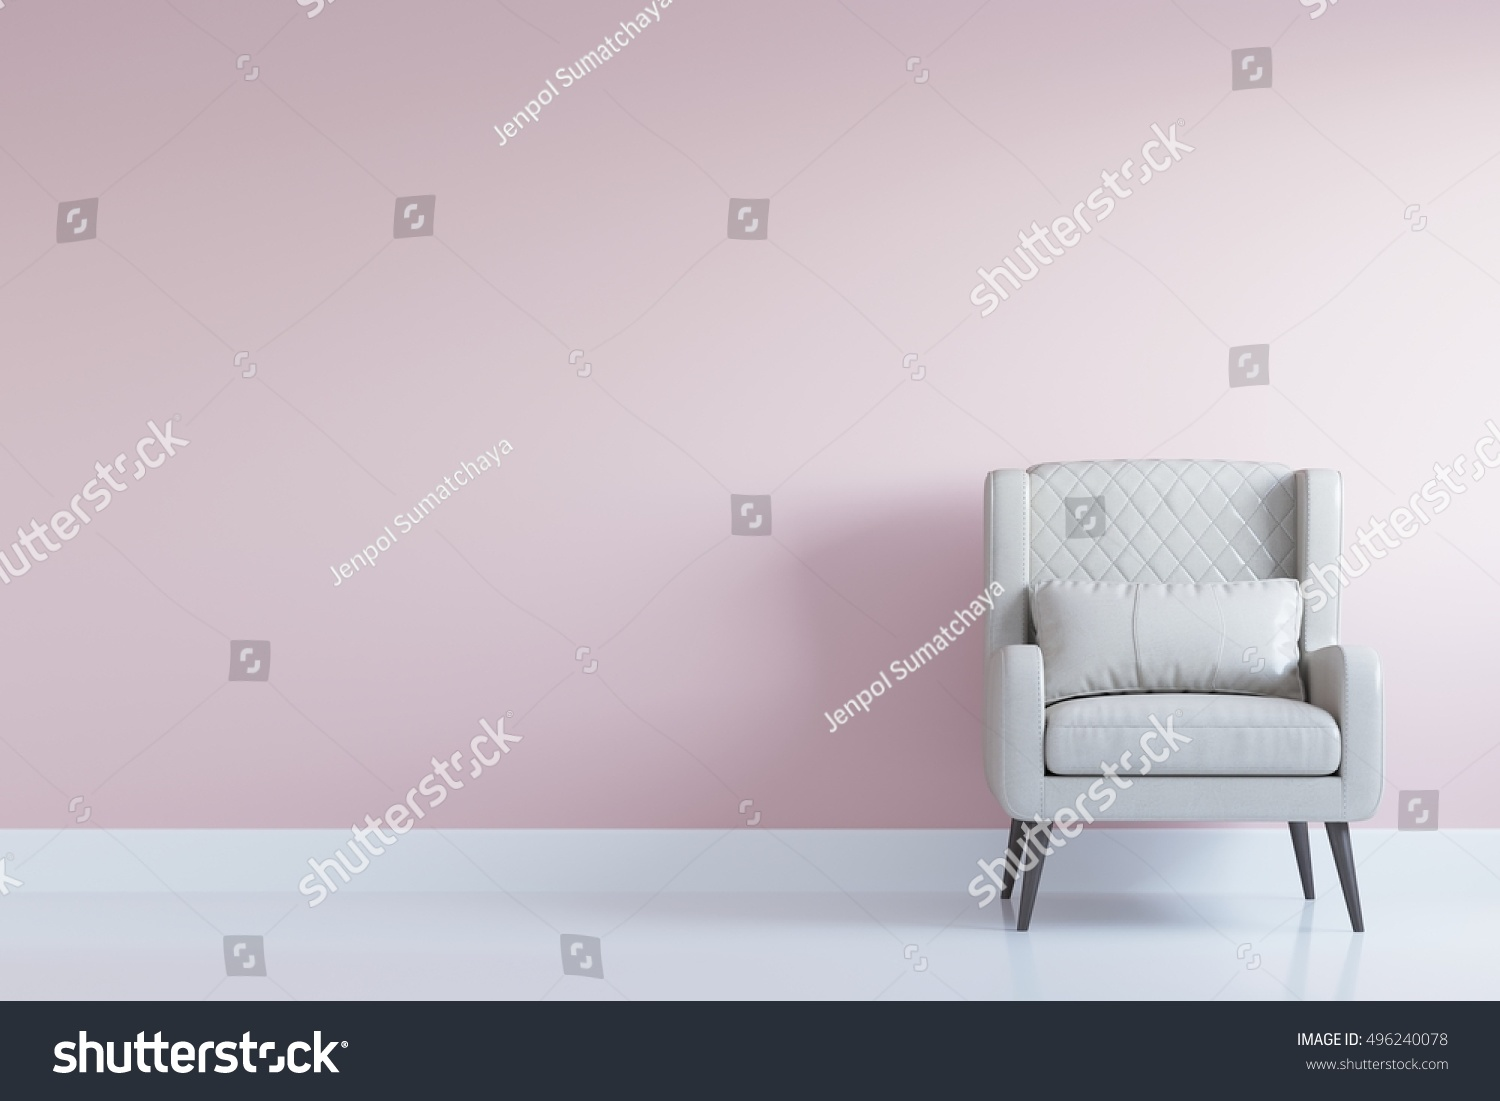 white comfortable arm chair in interior living room with pastel pink wall for copy space